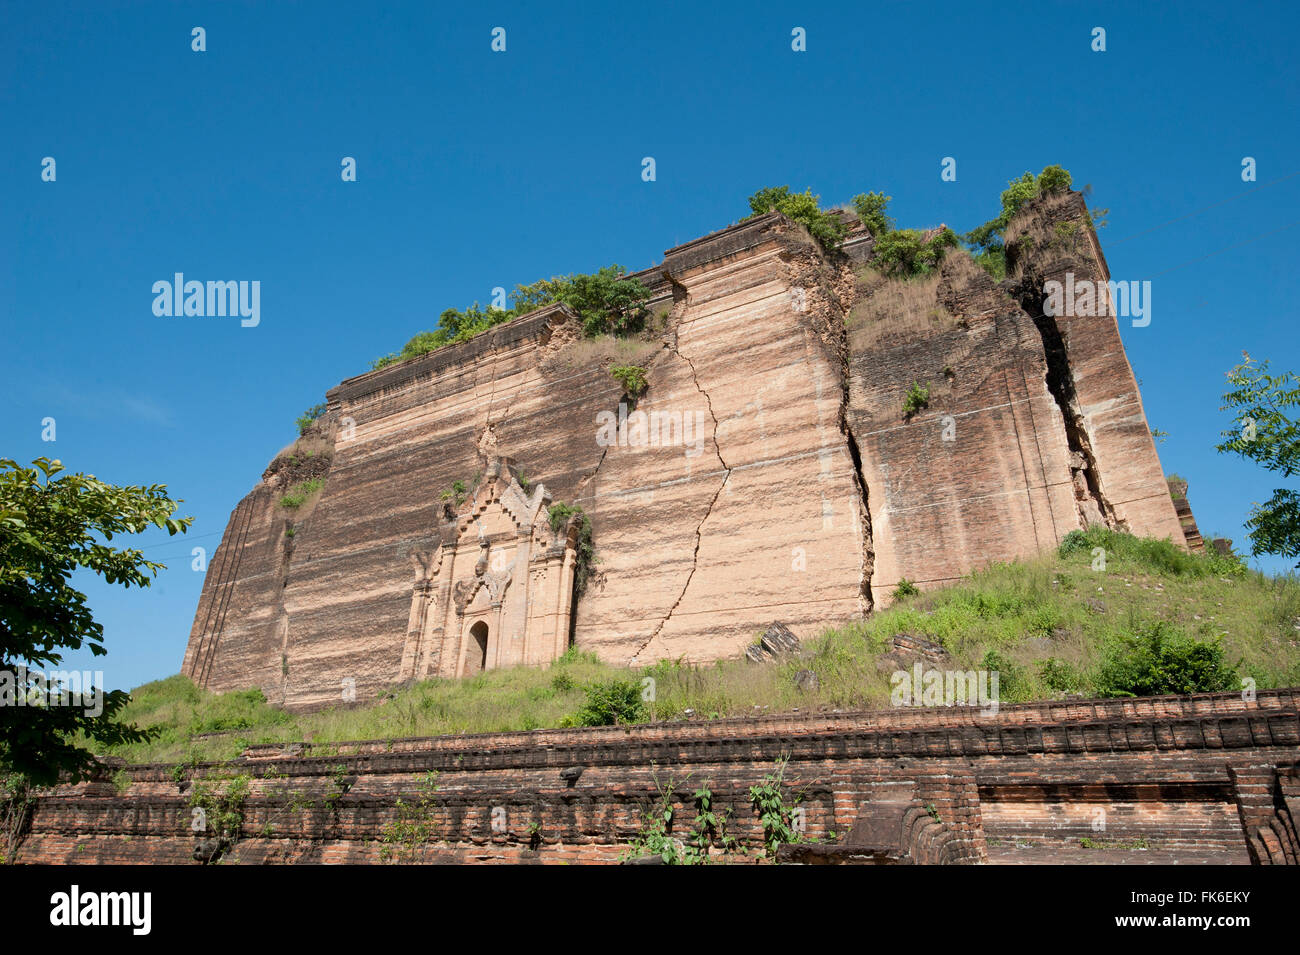 Mingun Pahtodawgyi, an incomplete 50 metre high brick construction stupa begun in 1790, damaged in 1839 earthquake, - Stock Image